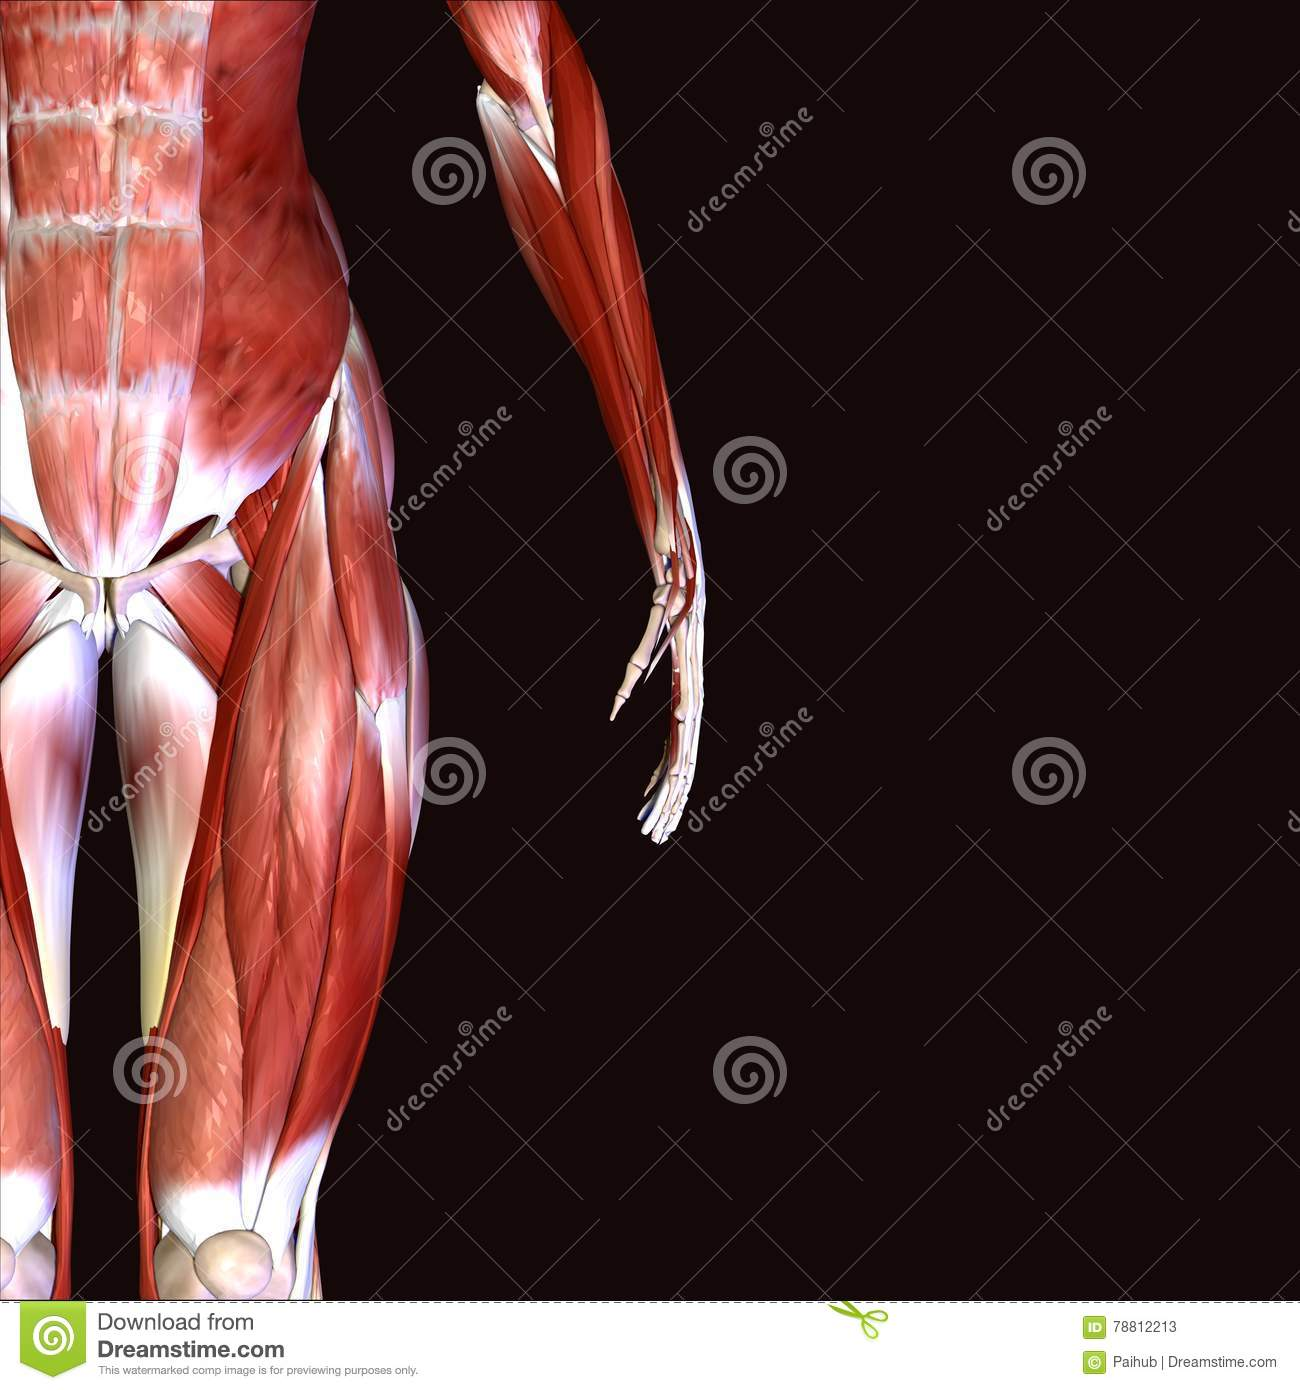 3d Illustration Of Muscles And Anatomy Stock Illustration